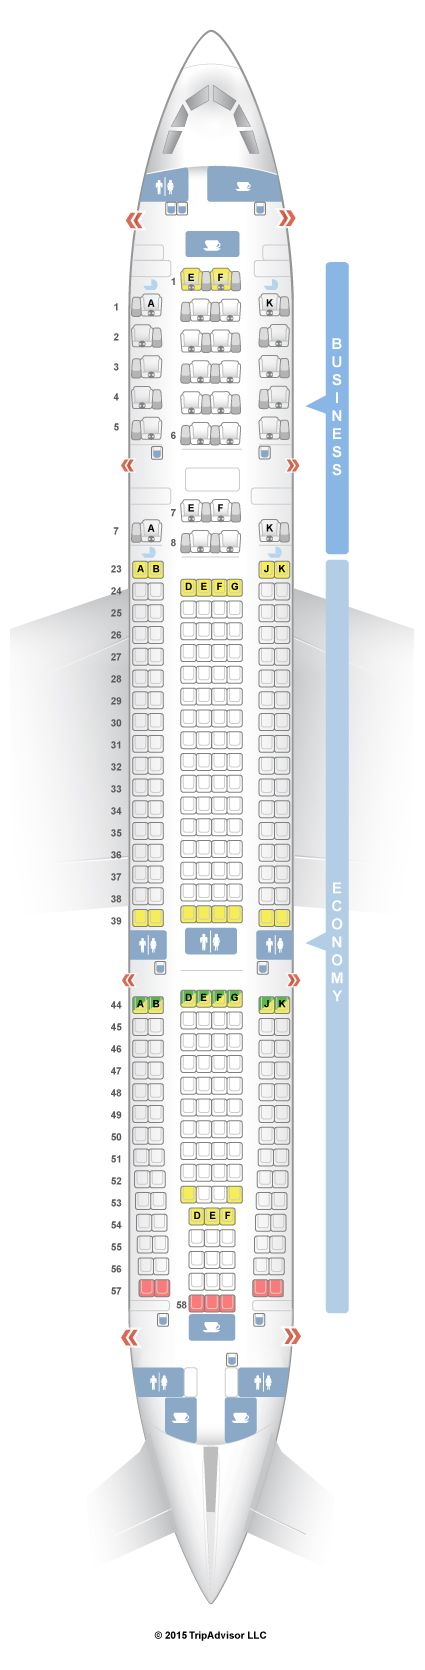 Thomas Cook Airlines Seating Plan Airbus A330 ...